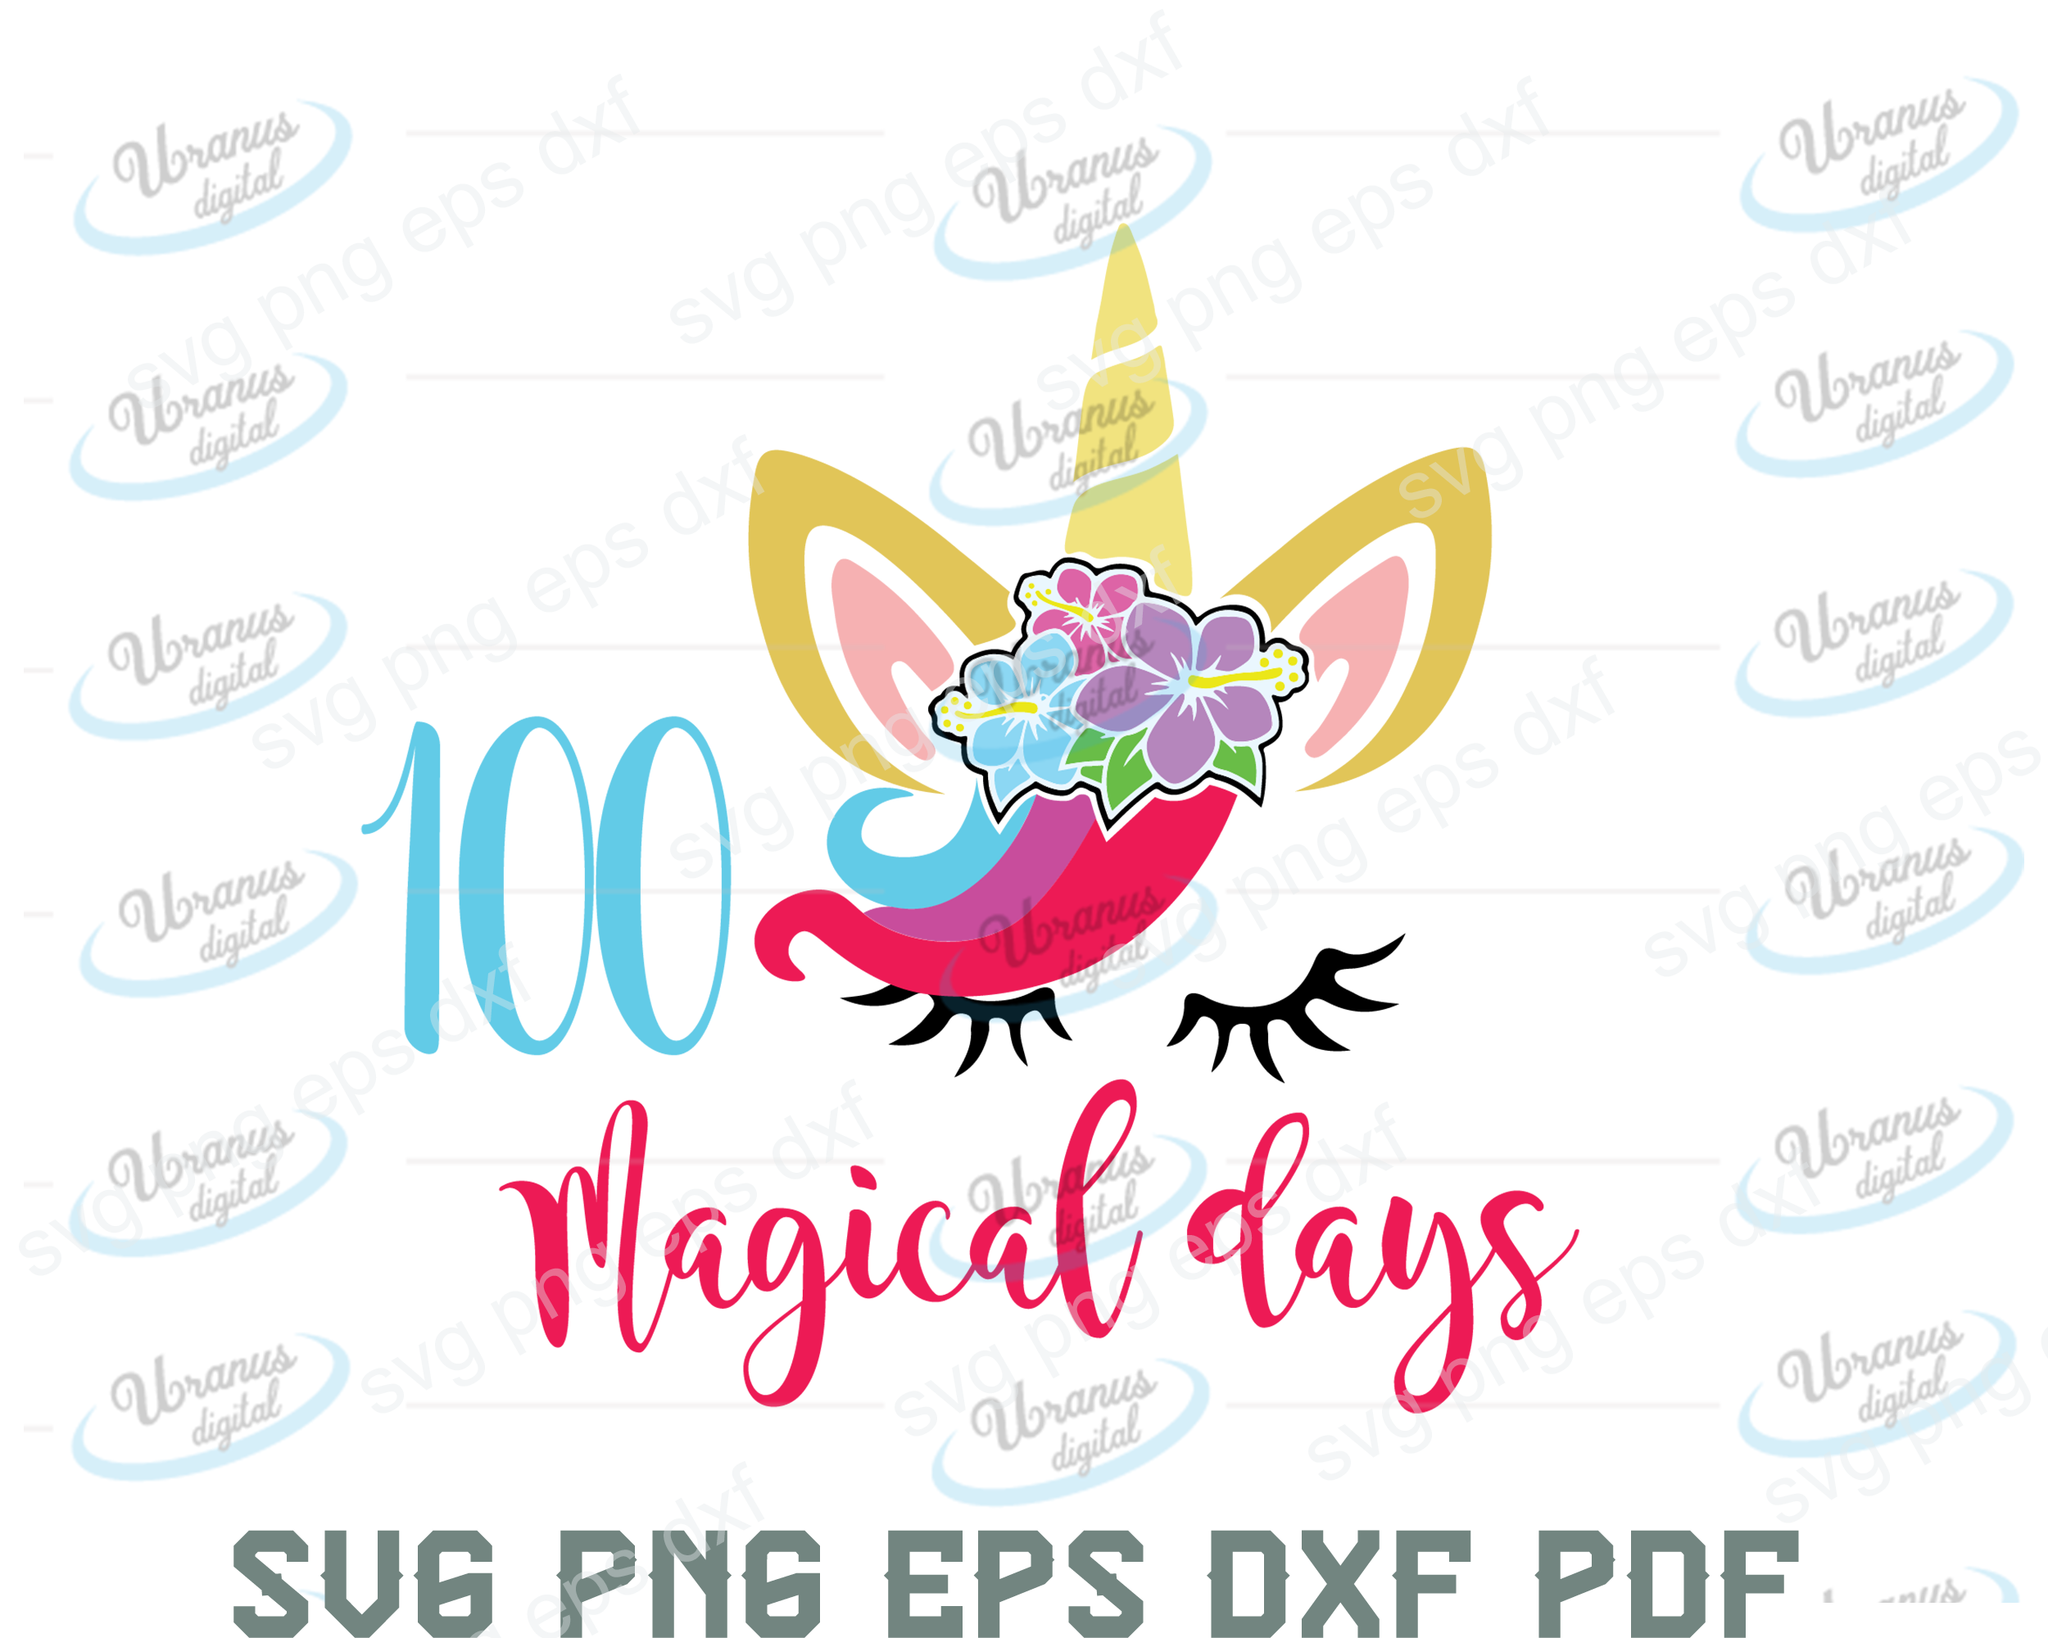 Copy of 100 magical dayas SVG,SVG Files For Silhouette, Files For Cricut, SVG, DXF, EPS, PNG Instant Download